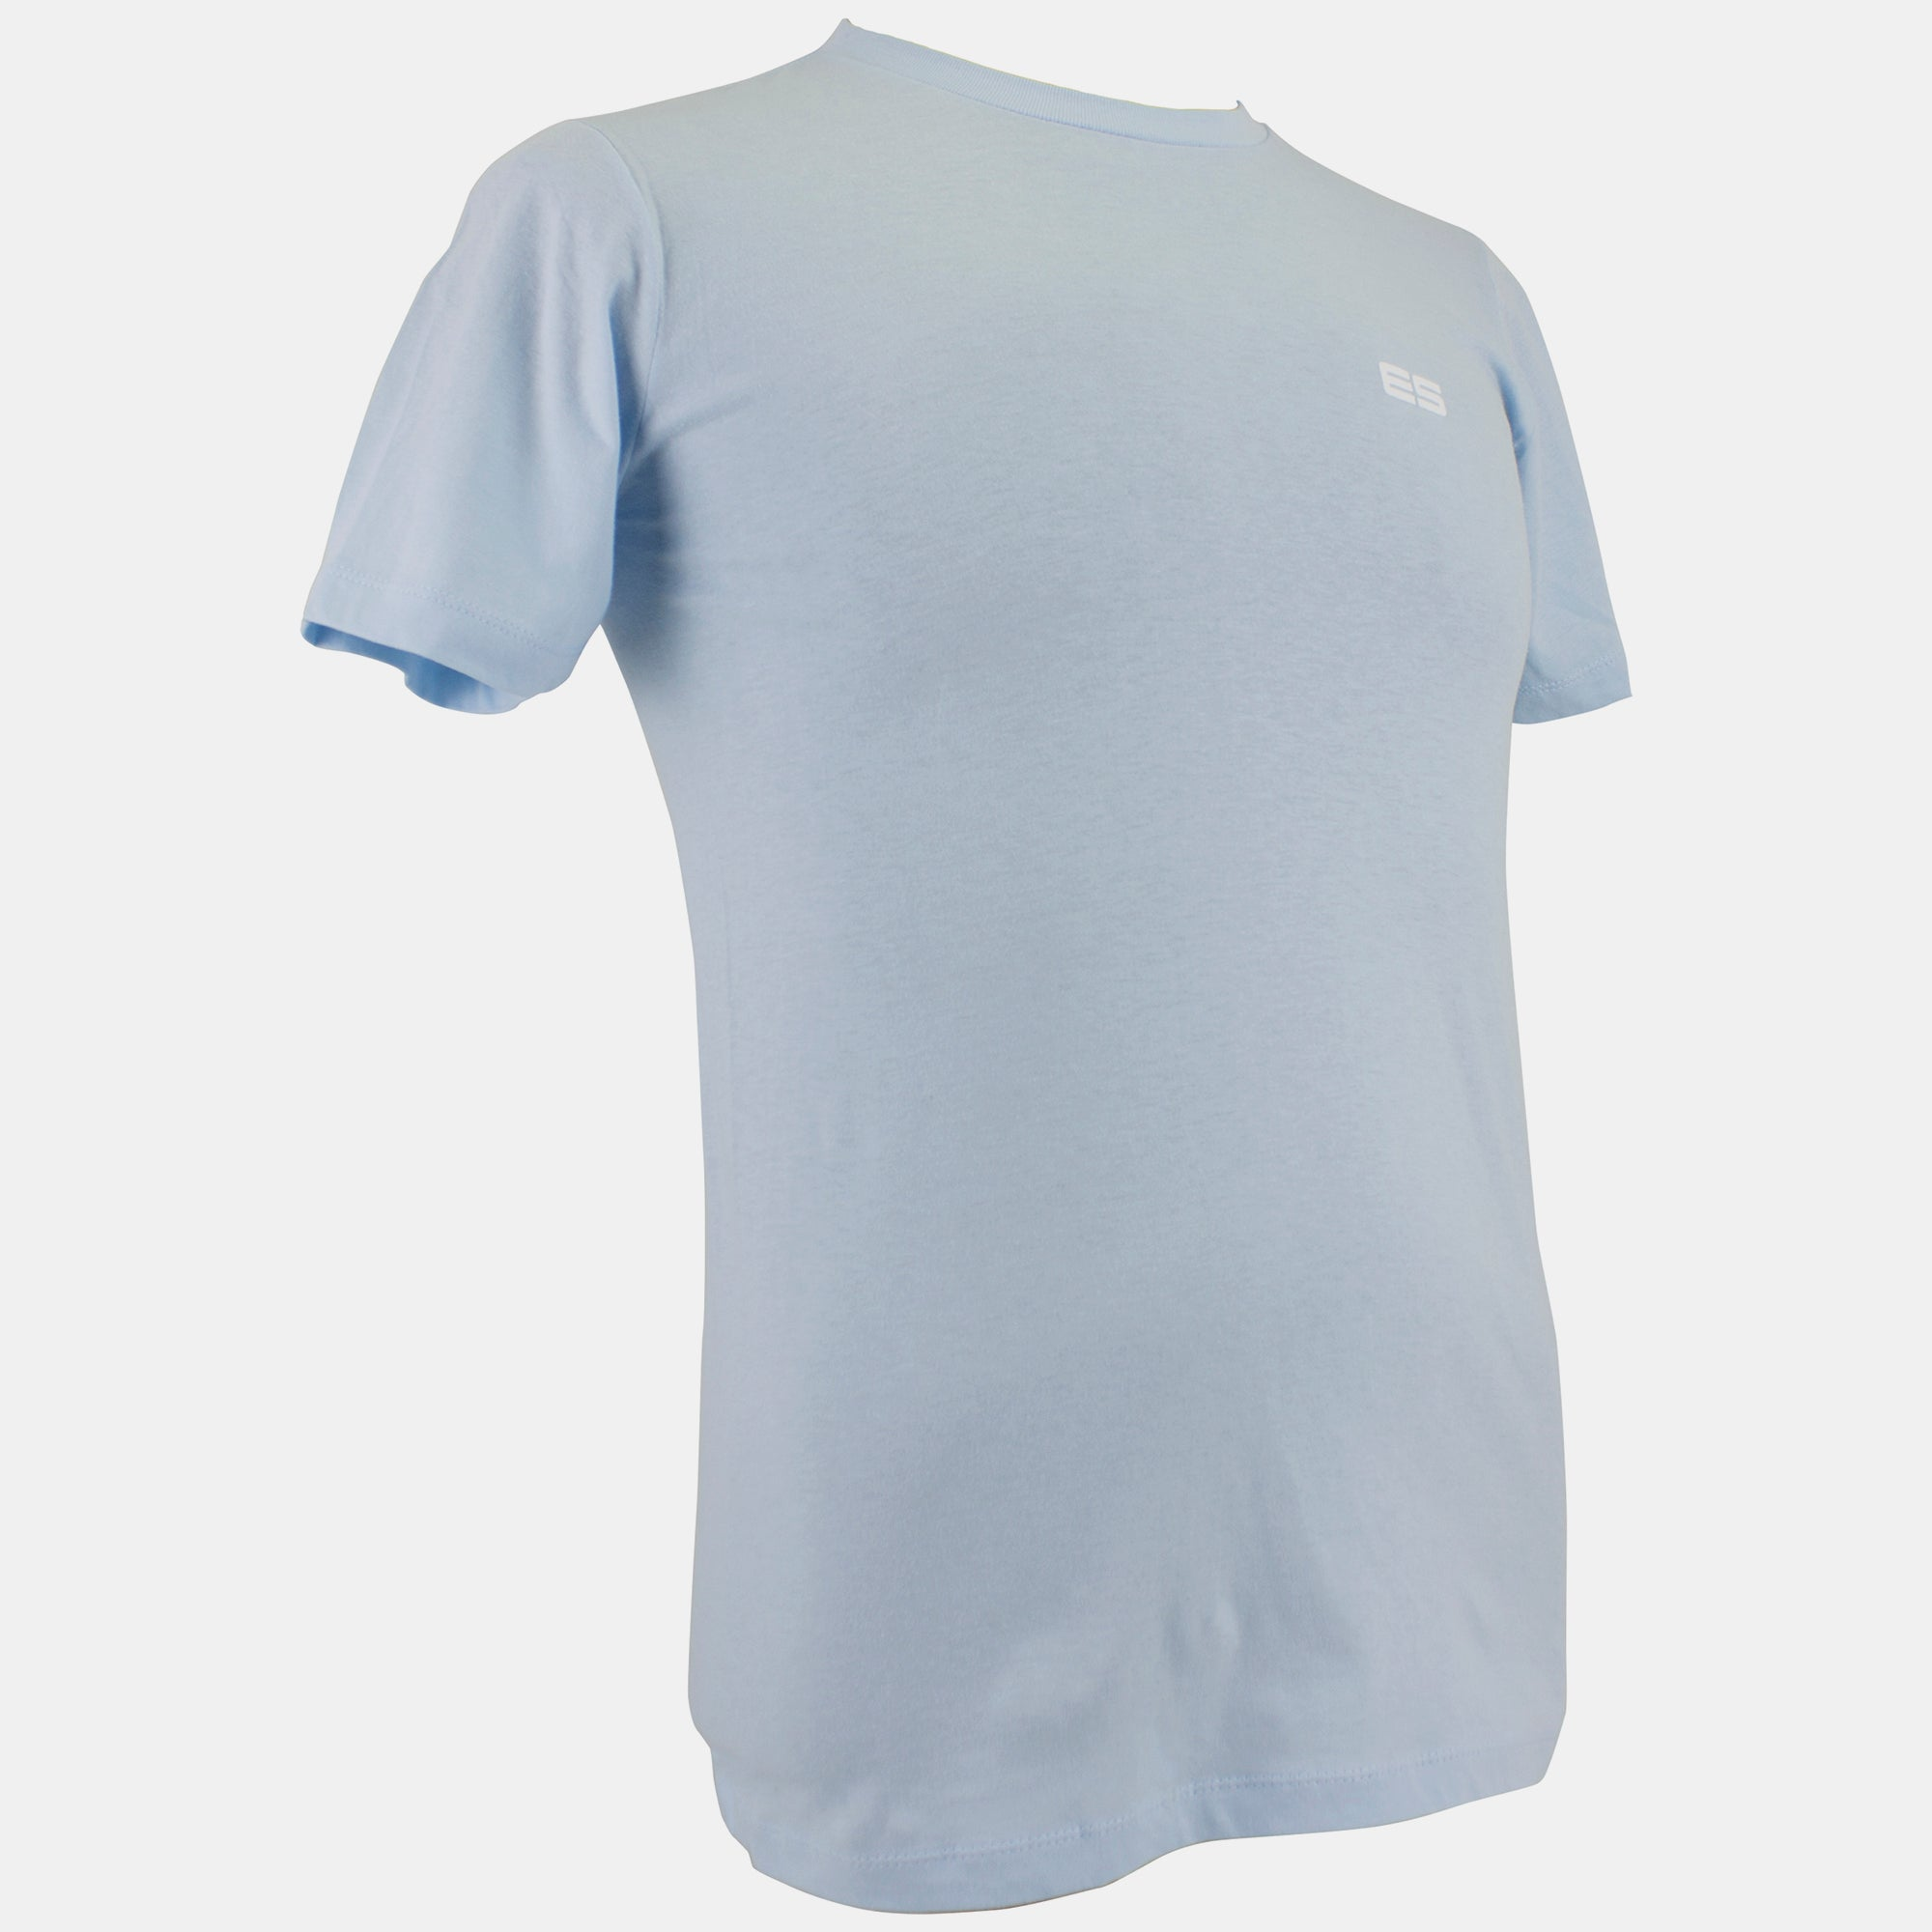 Eastsport Slim-Fit Tee